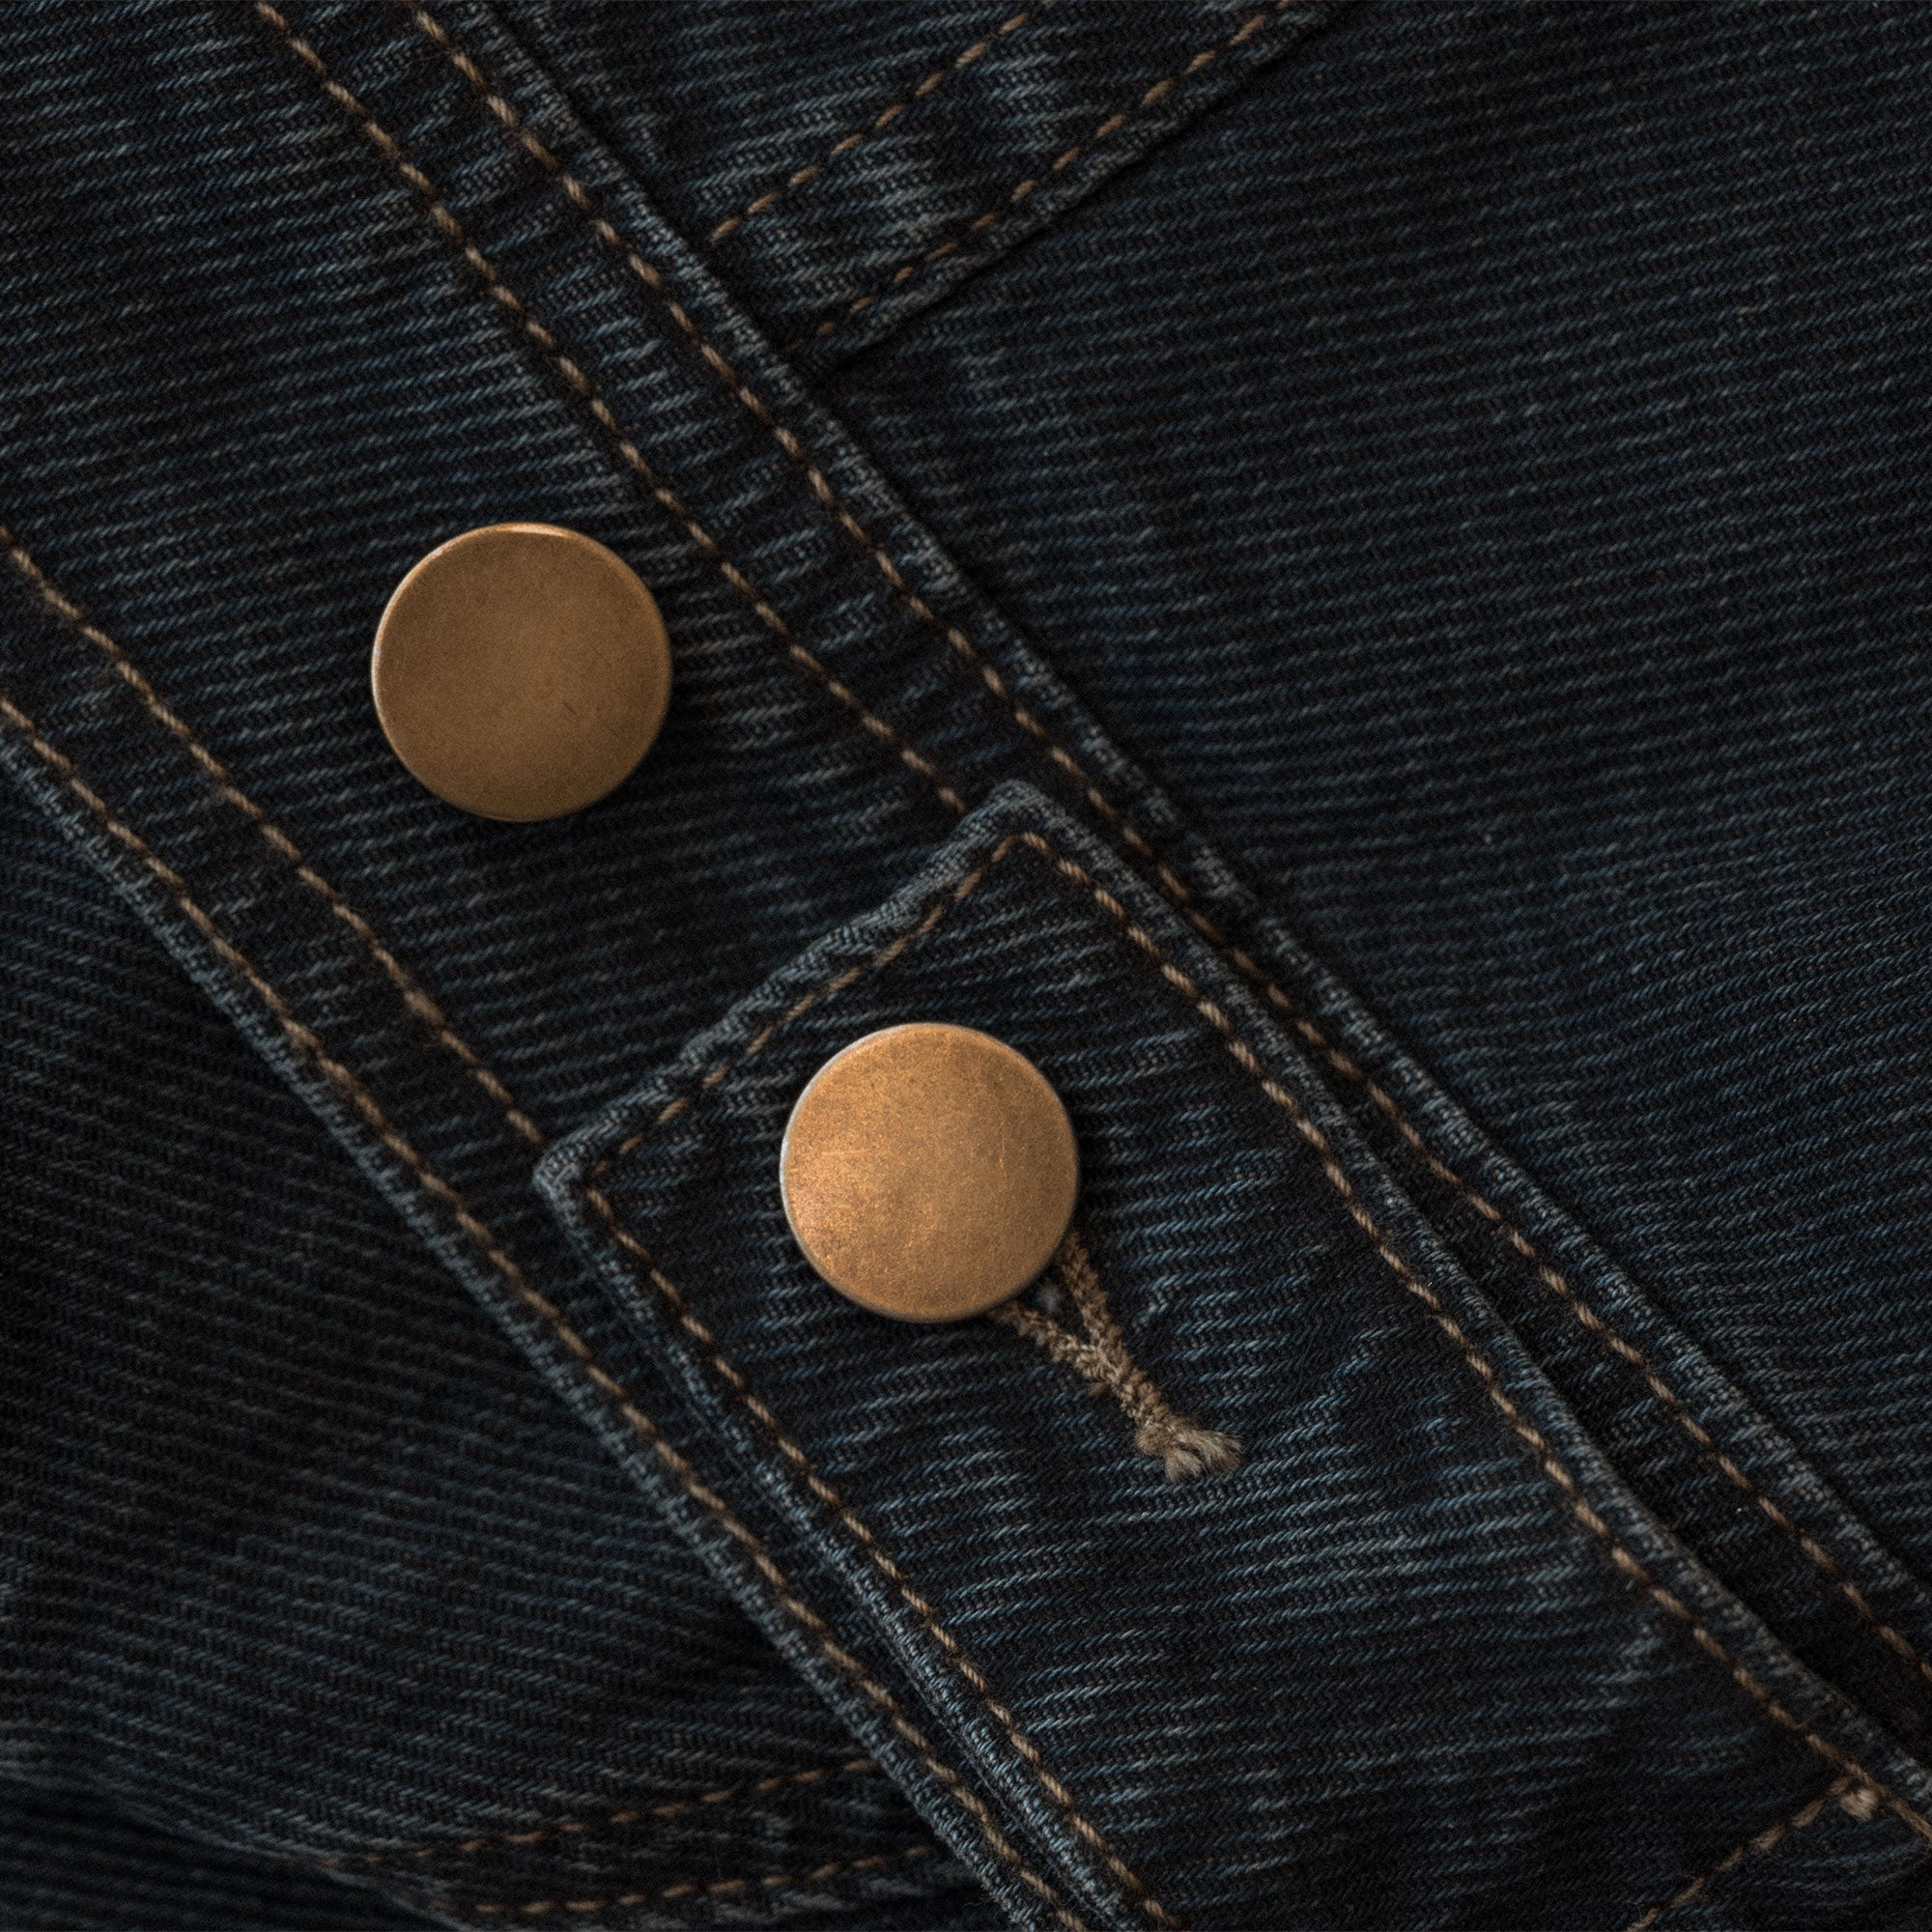 a close shot of the metal buttons on the so ill unisex denim jacket